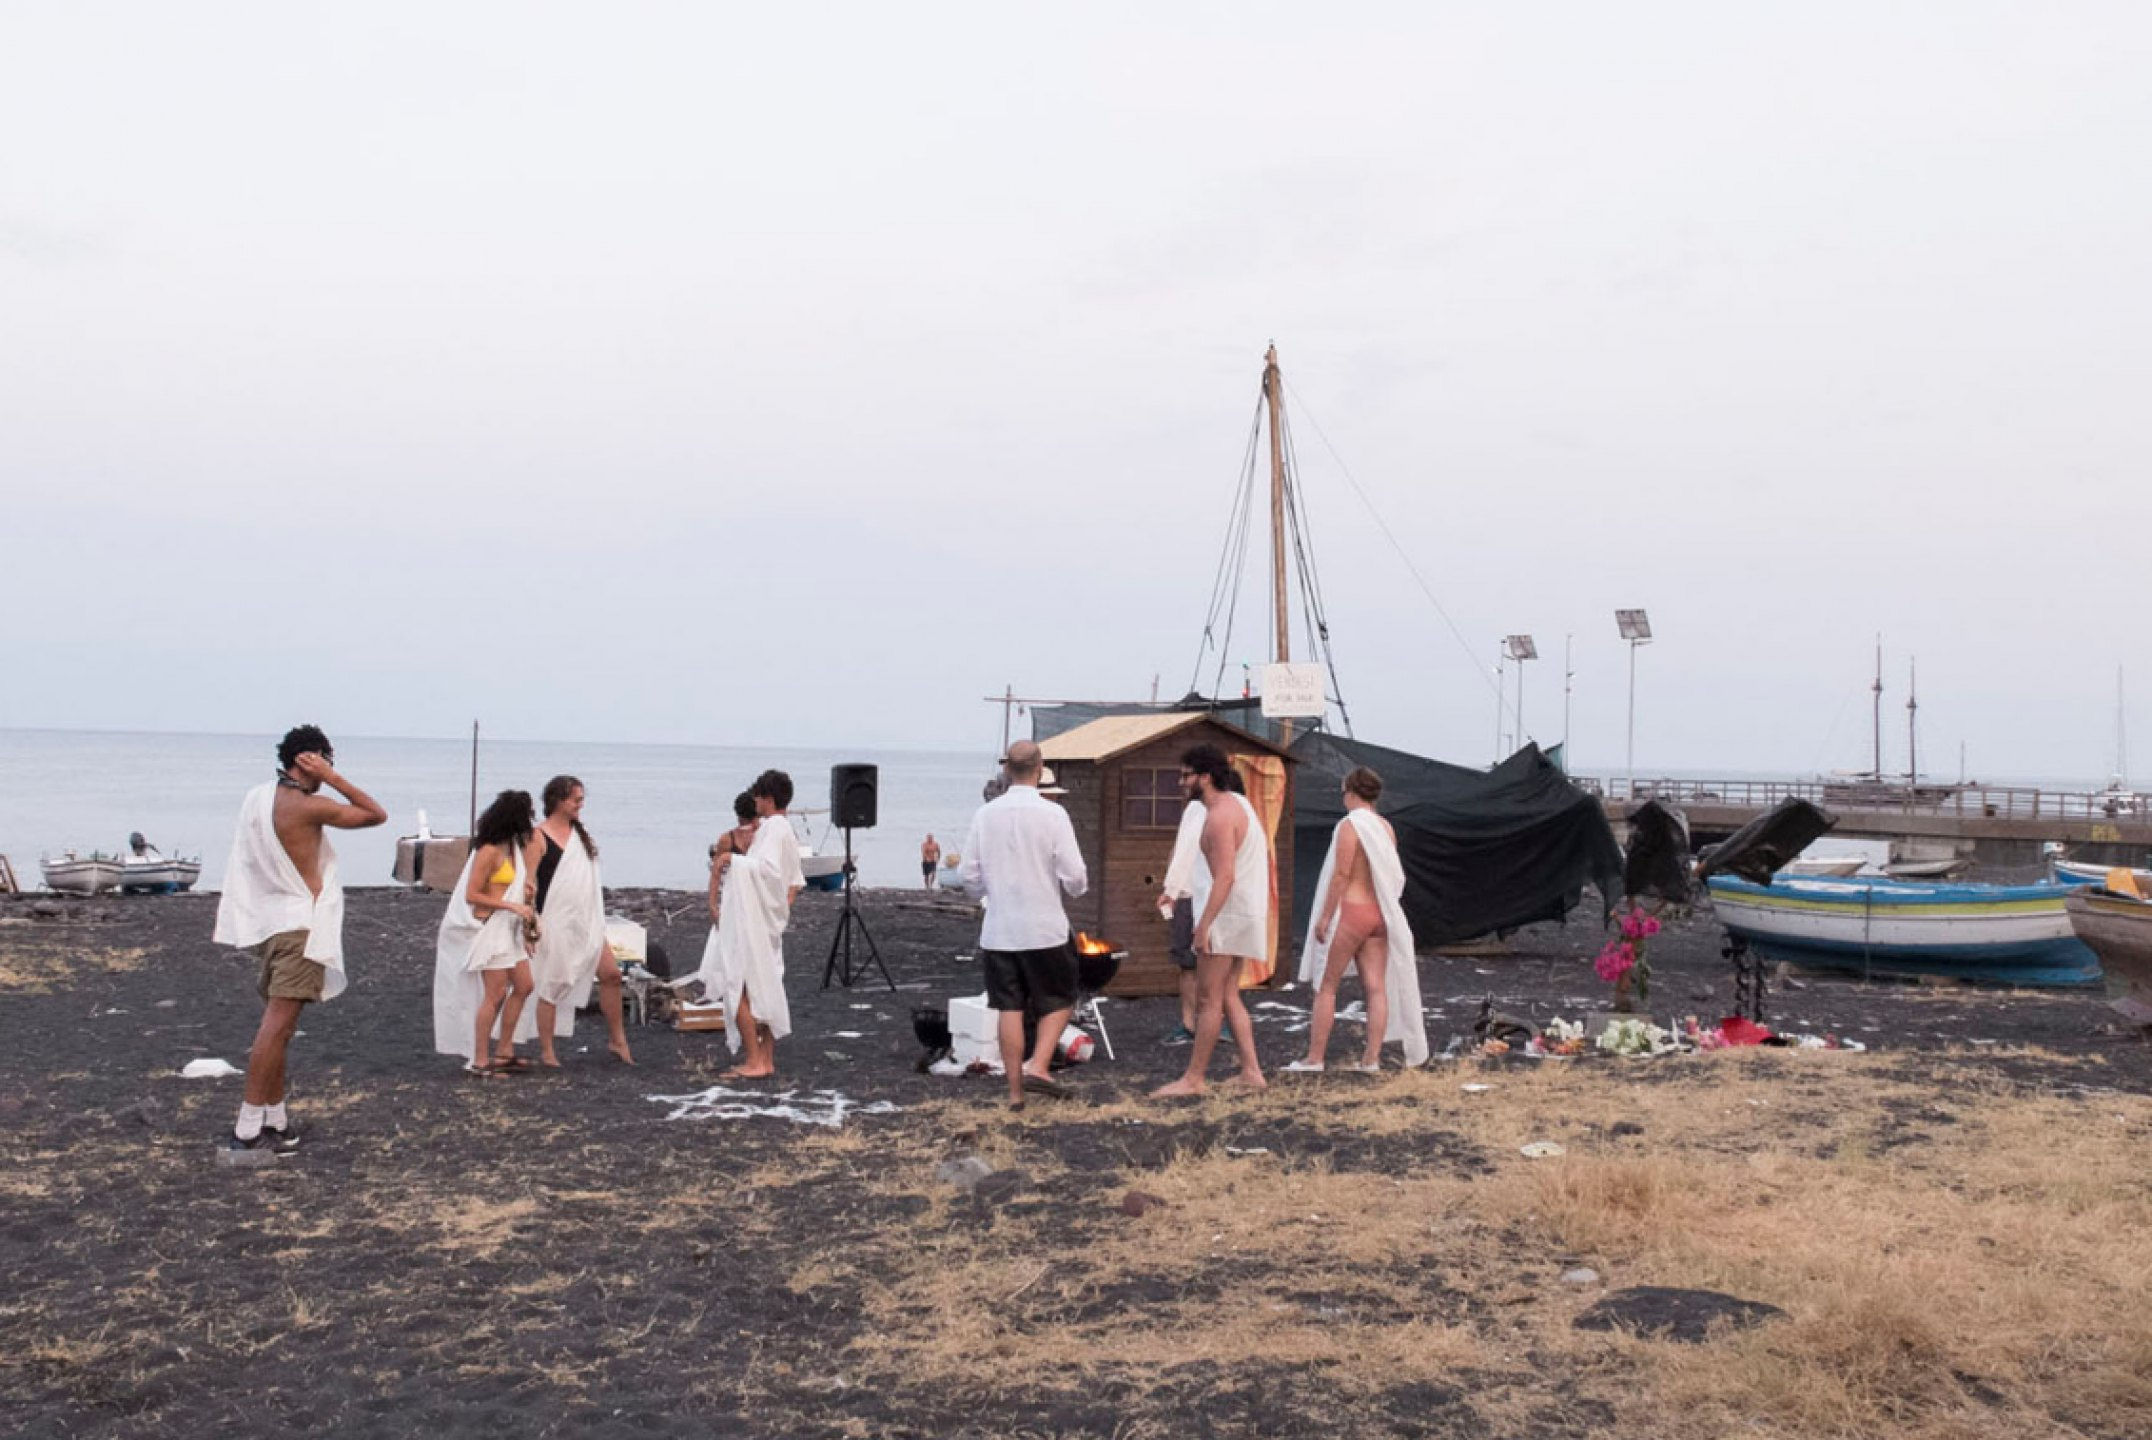 Adriano Costa, <em>In Favour of a Total Eclipse</em>, 2015, Performance, Fiorucci Art Trust, Stromboli, Italy - Mendes Wood DM